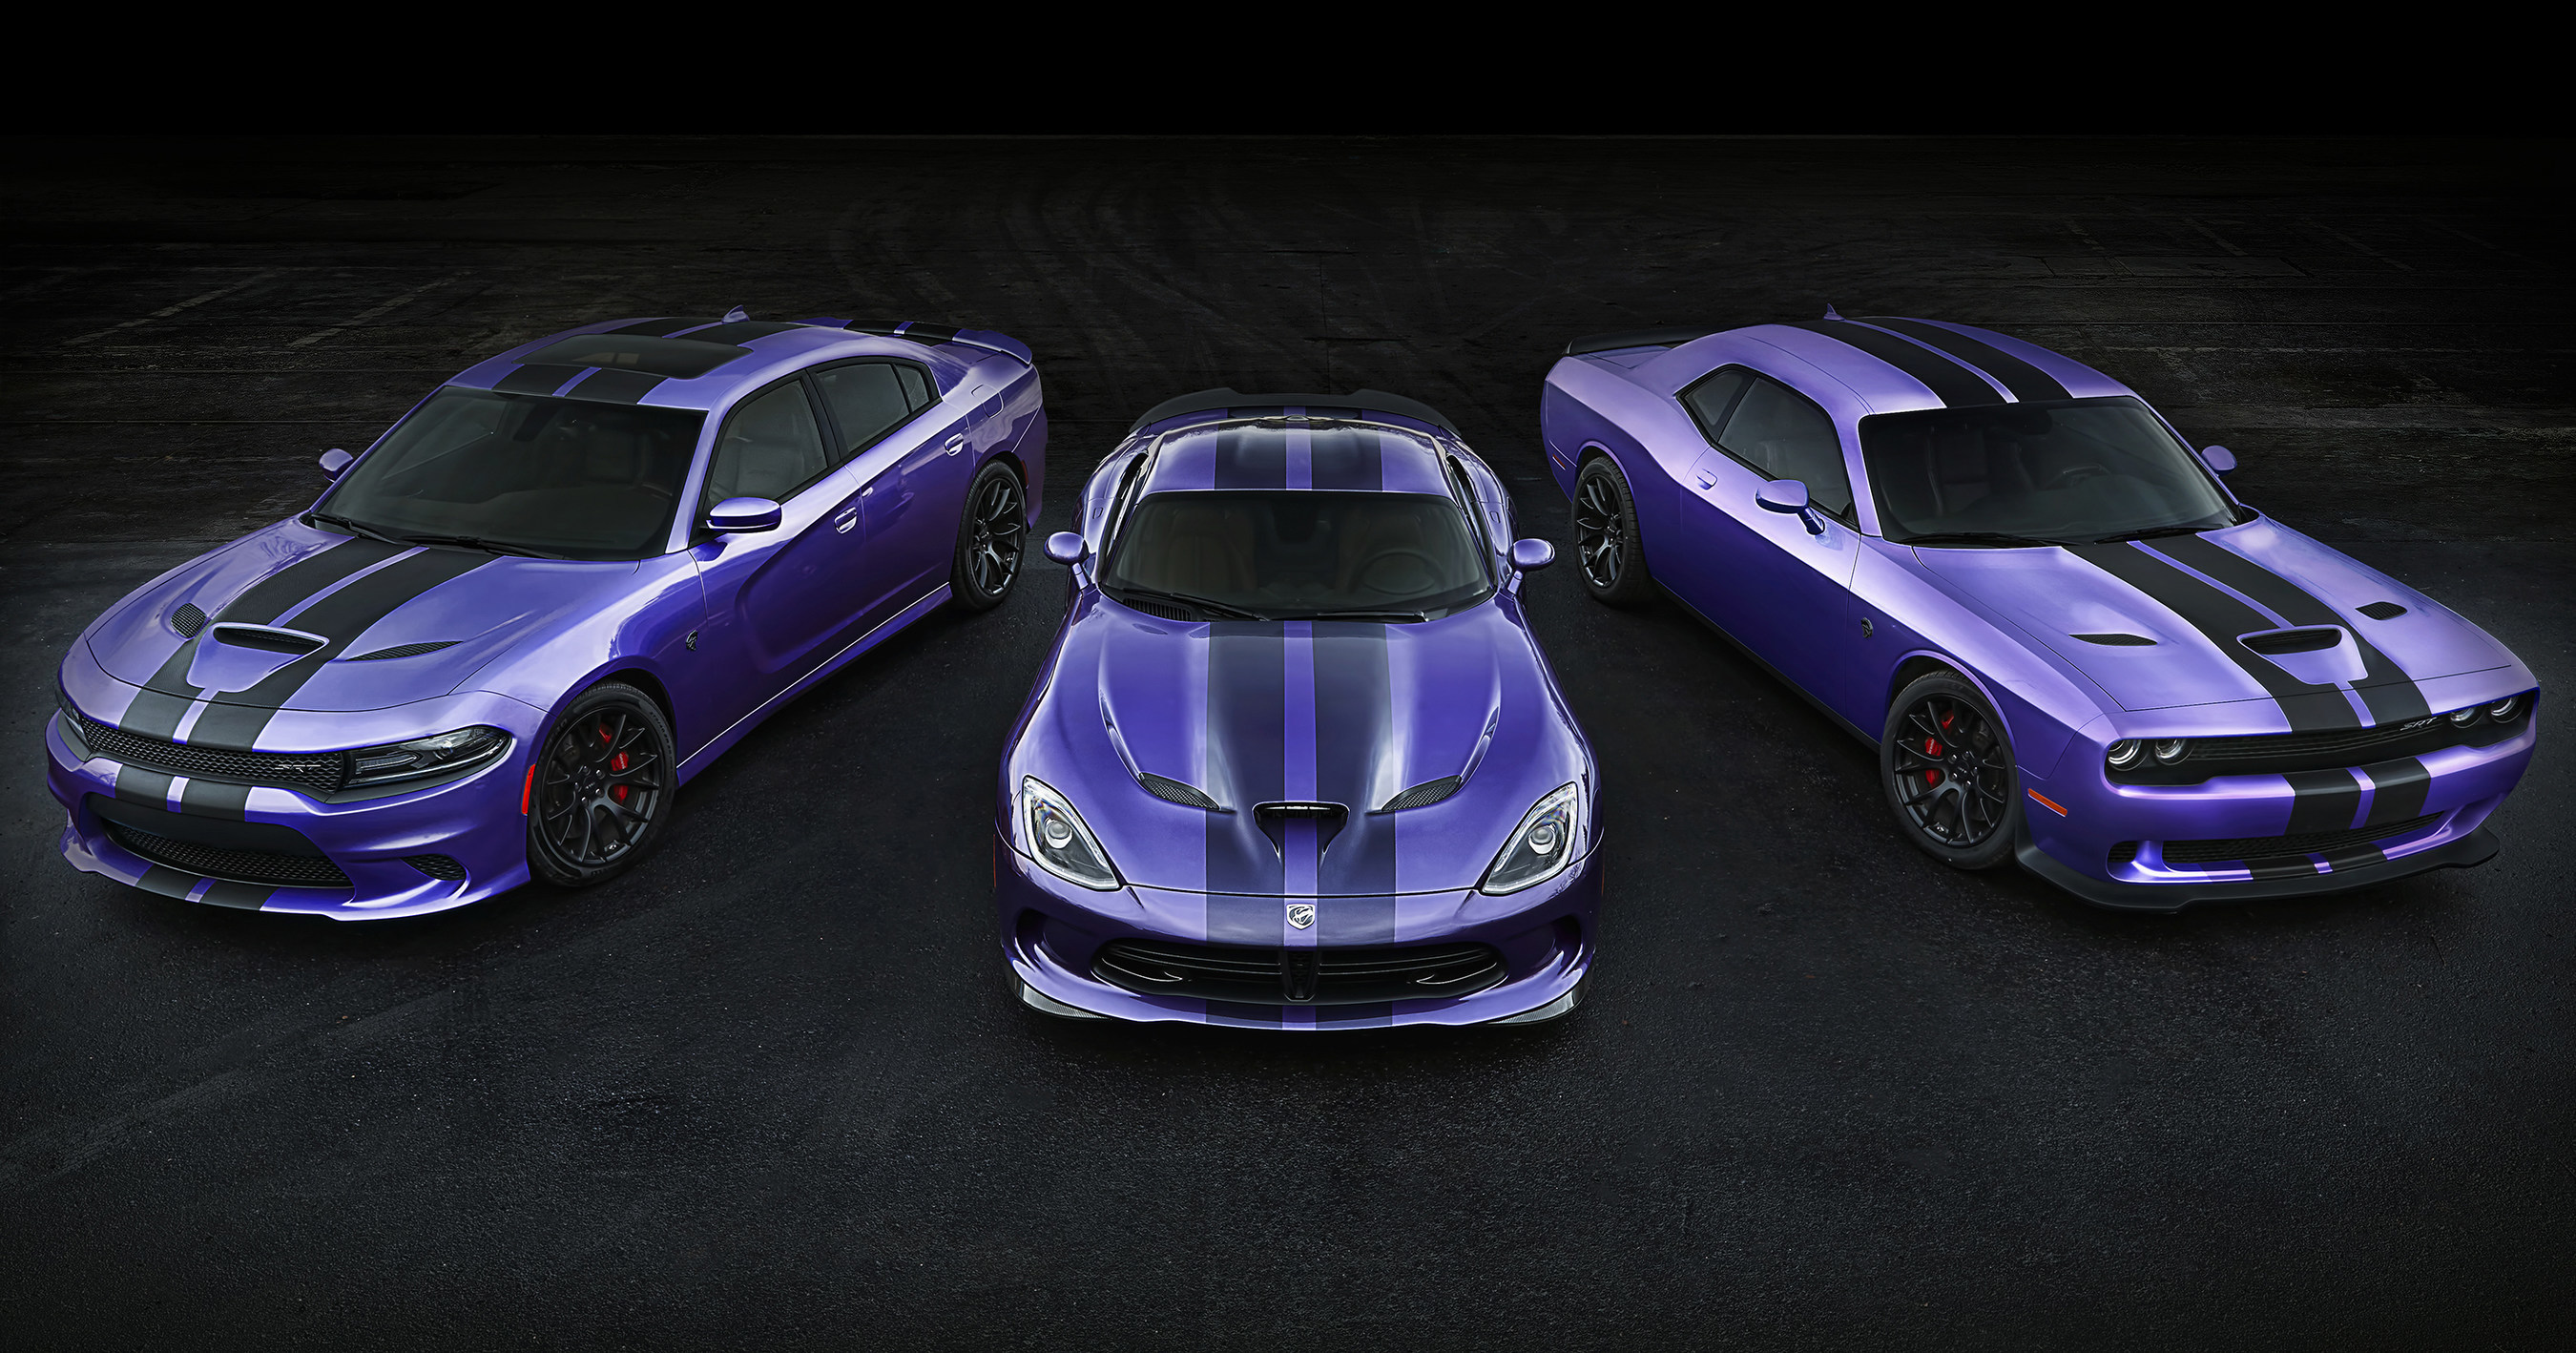 2016 Challenger And Charger Srt Hellcat Models Earn Exclusive Stripes Dodge Extends Plum Crazy Paint